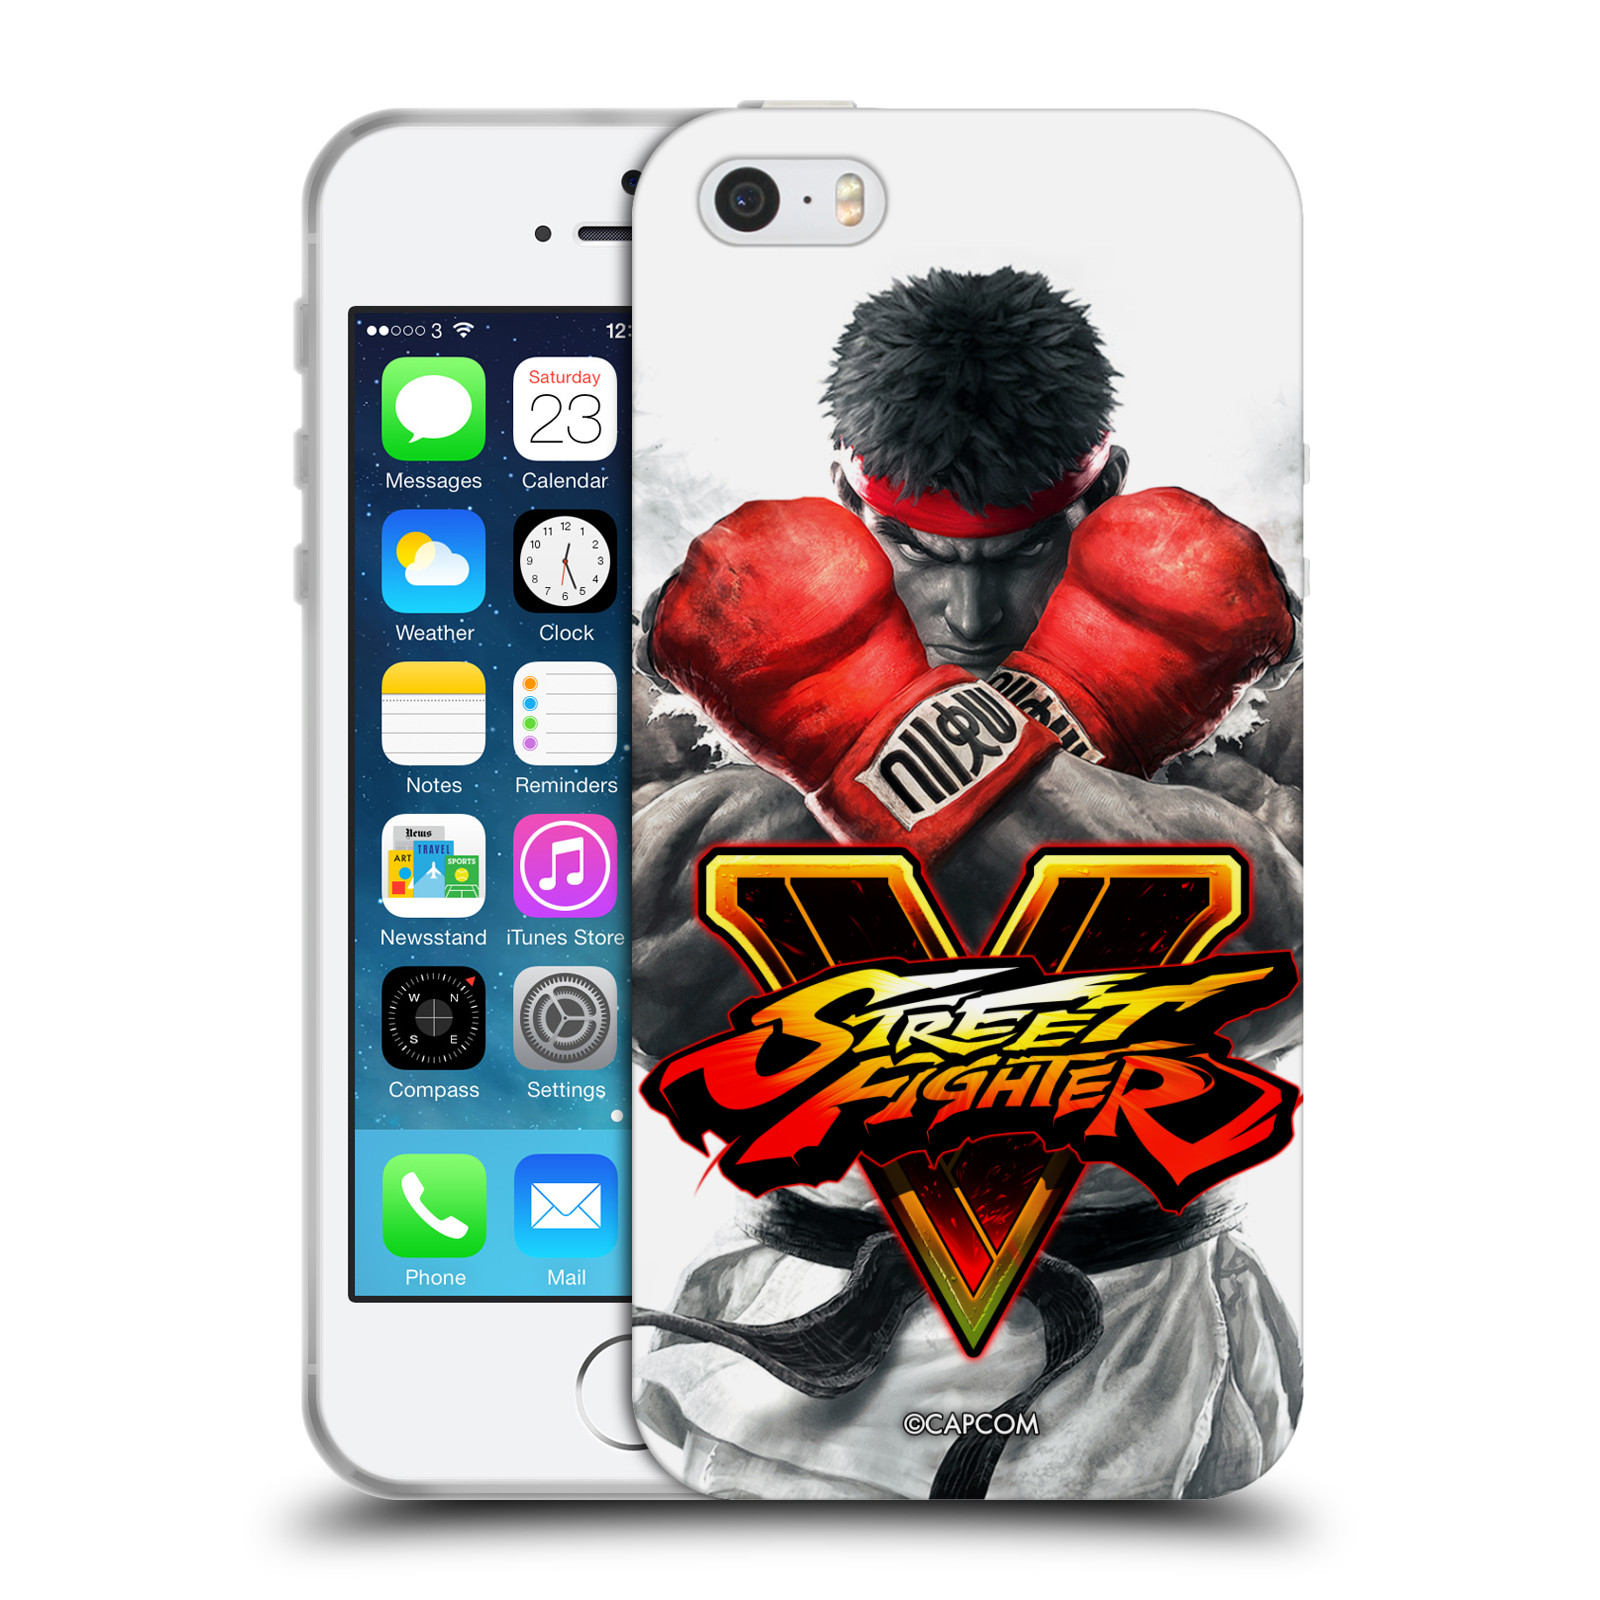 HEAD CASE silikonový obal na mobil Apple Iphone 5/5S oficiální kryt STREET FIGHTER Boxer Ryu